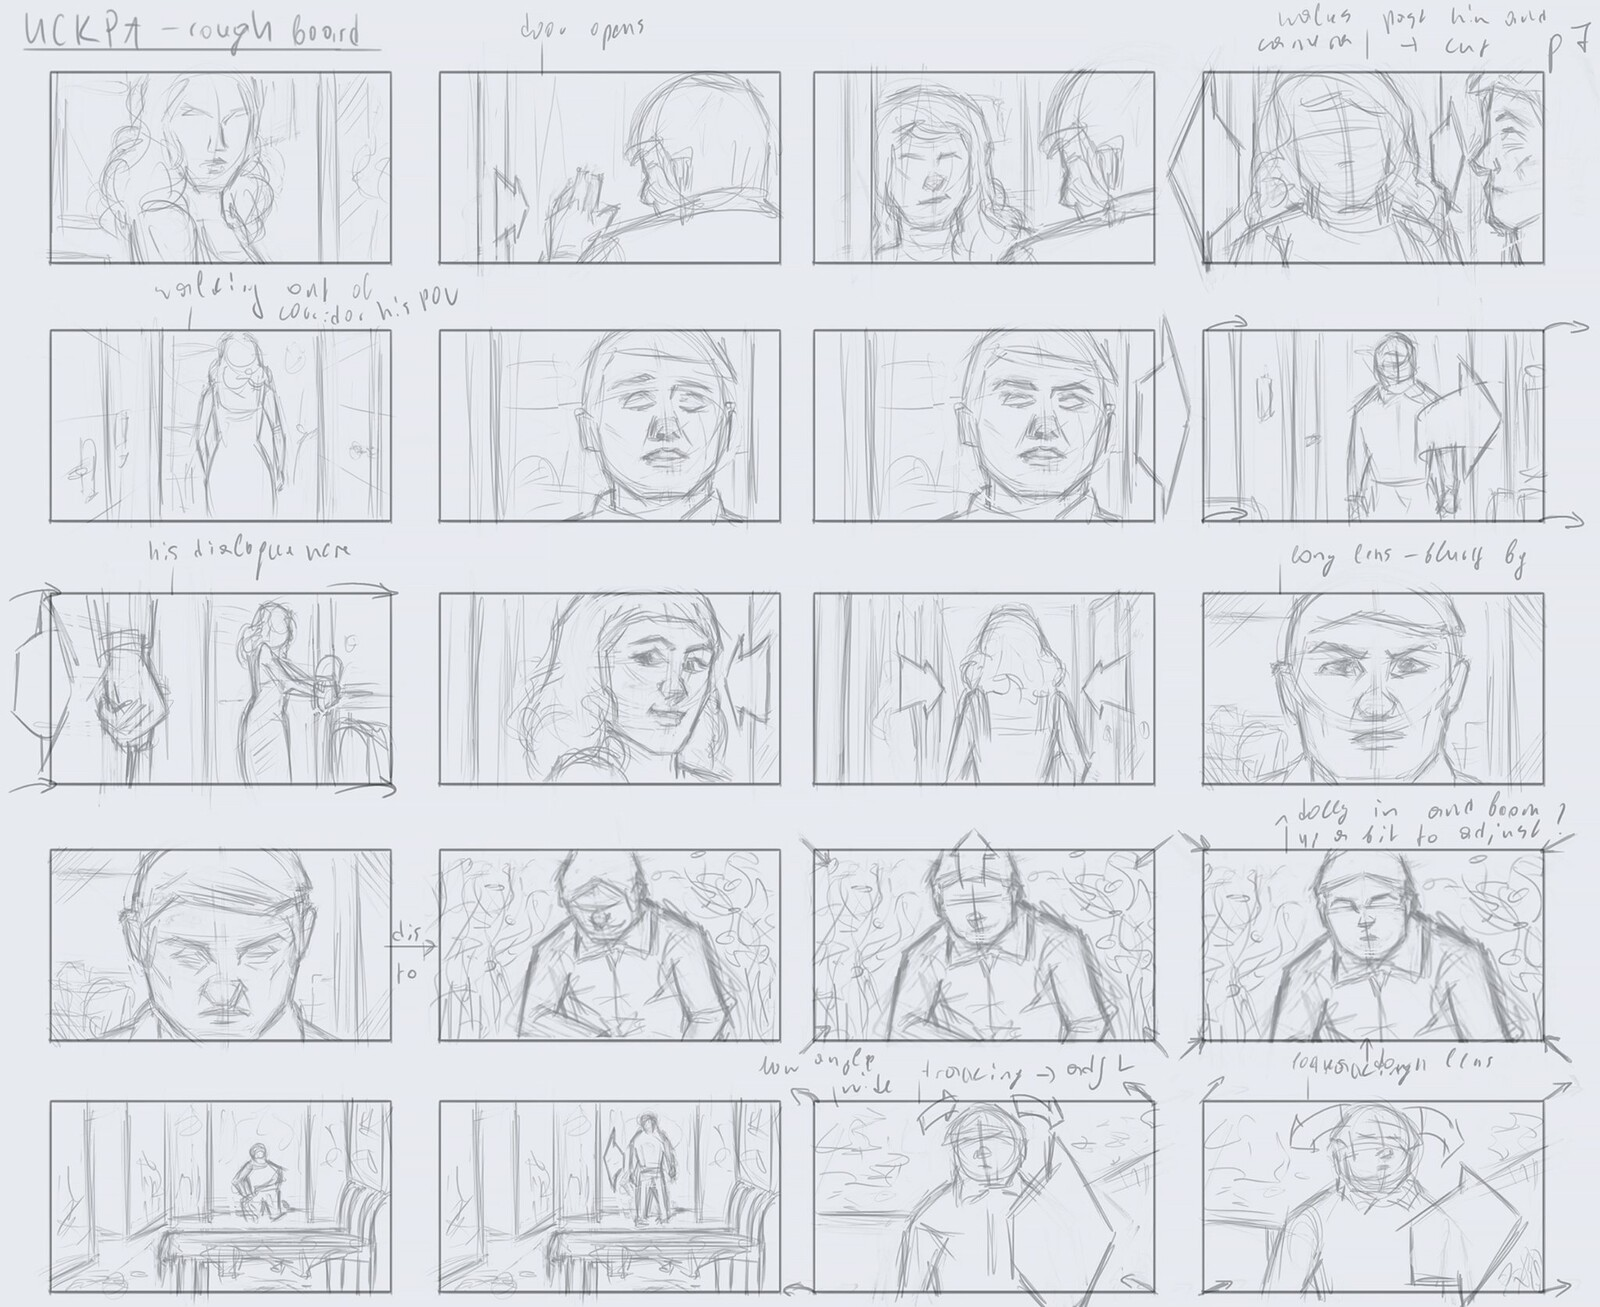 Rough board from a live-action short film I am currently working on.